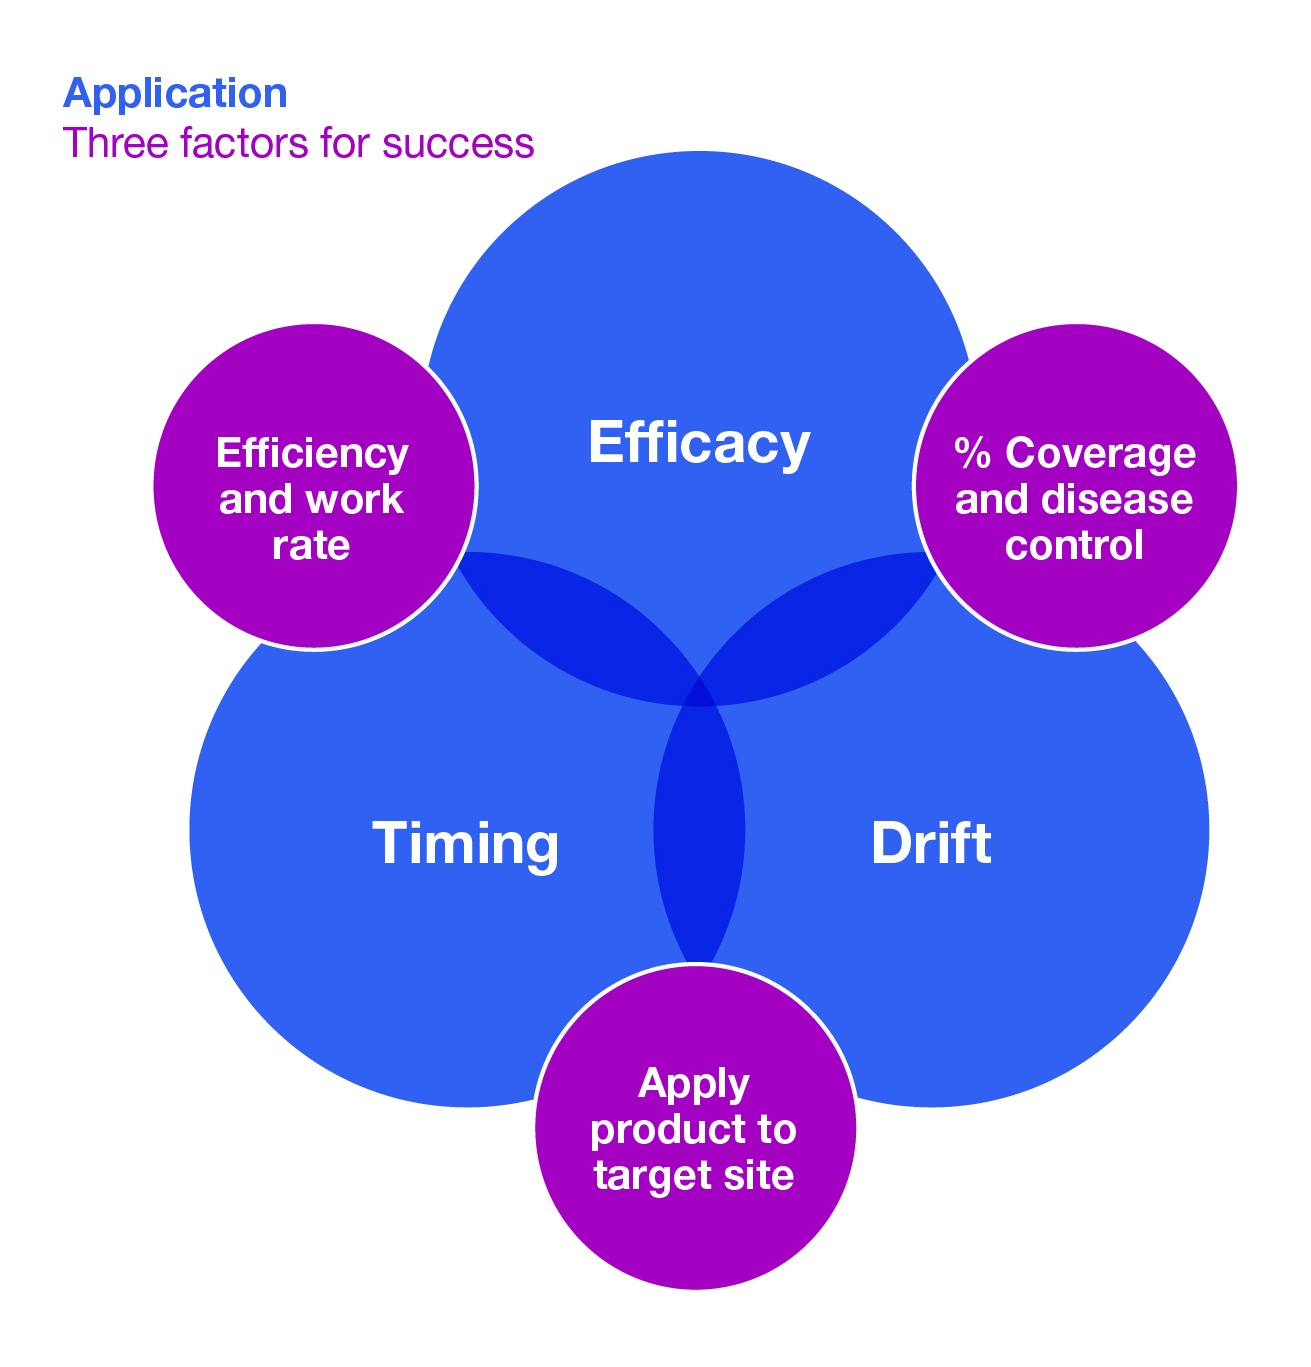 The three key factors for success in spray applications